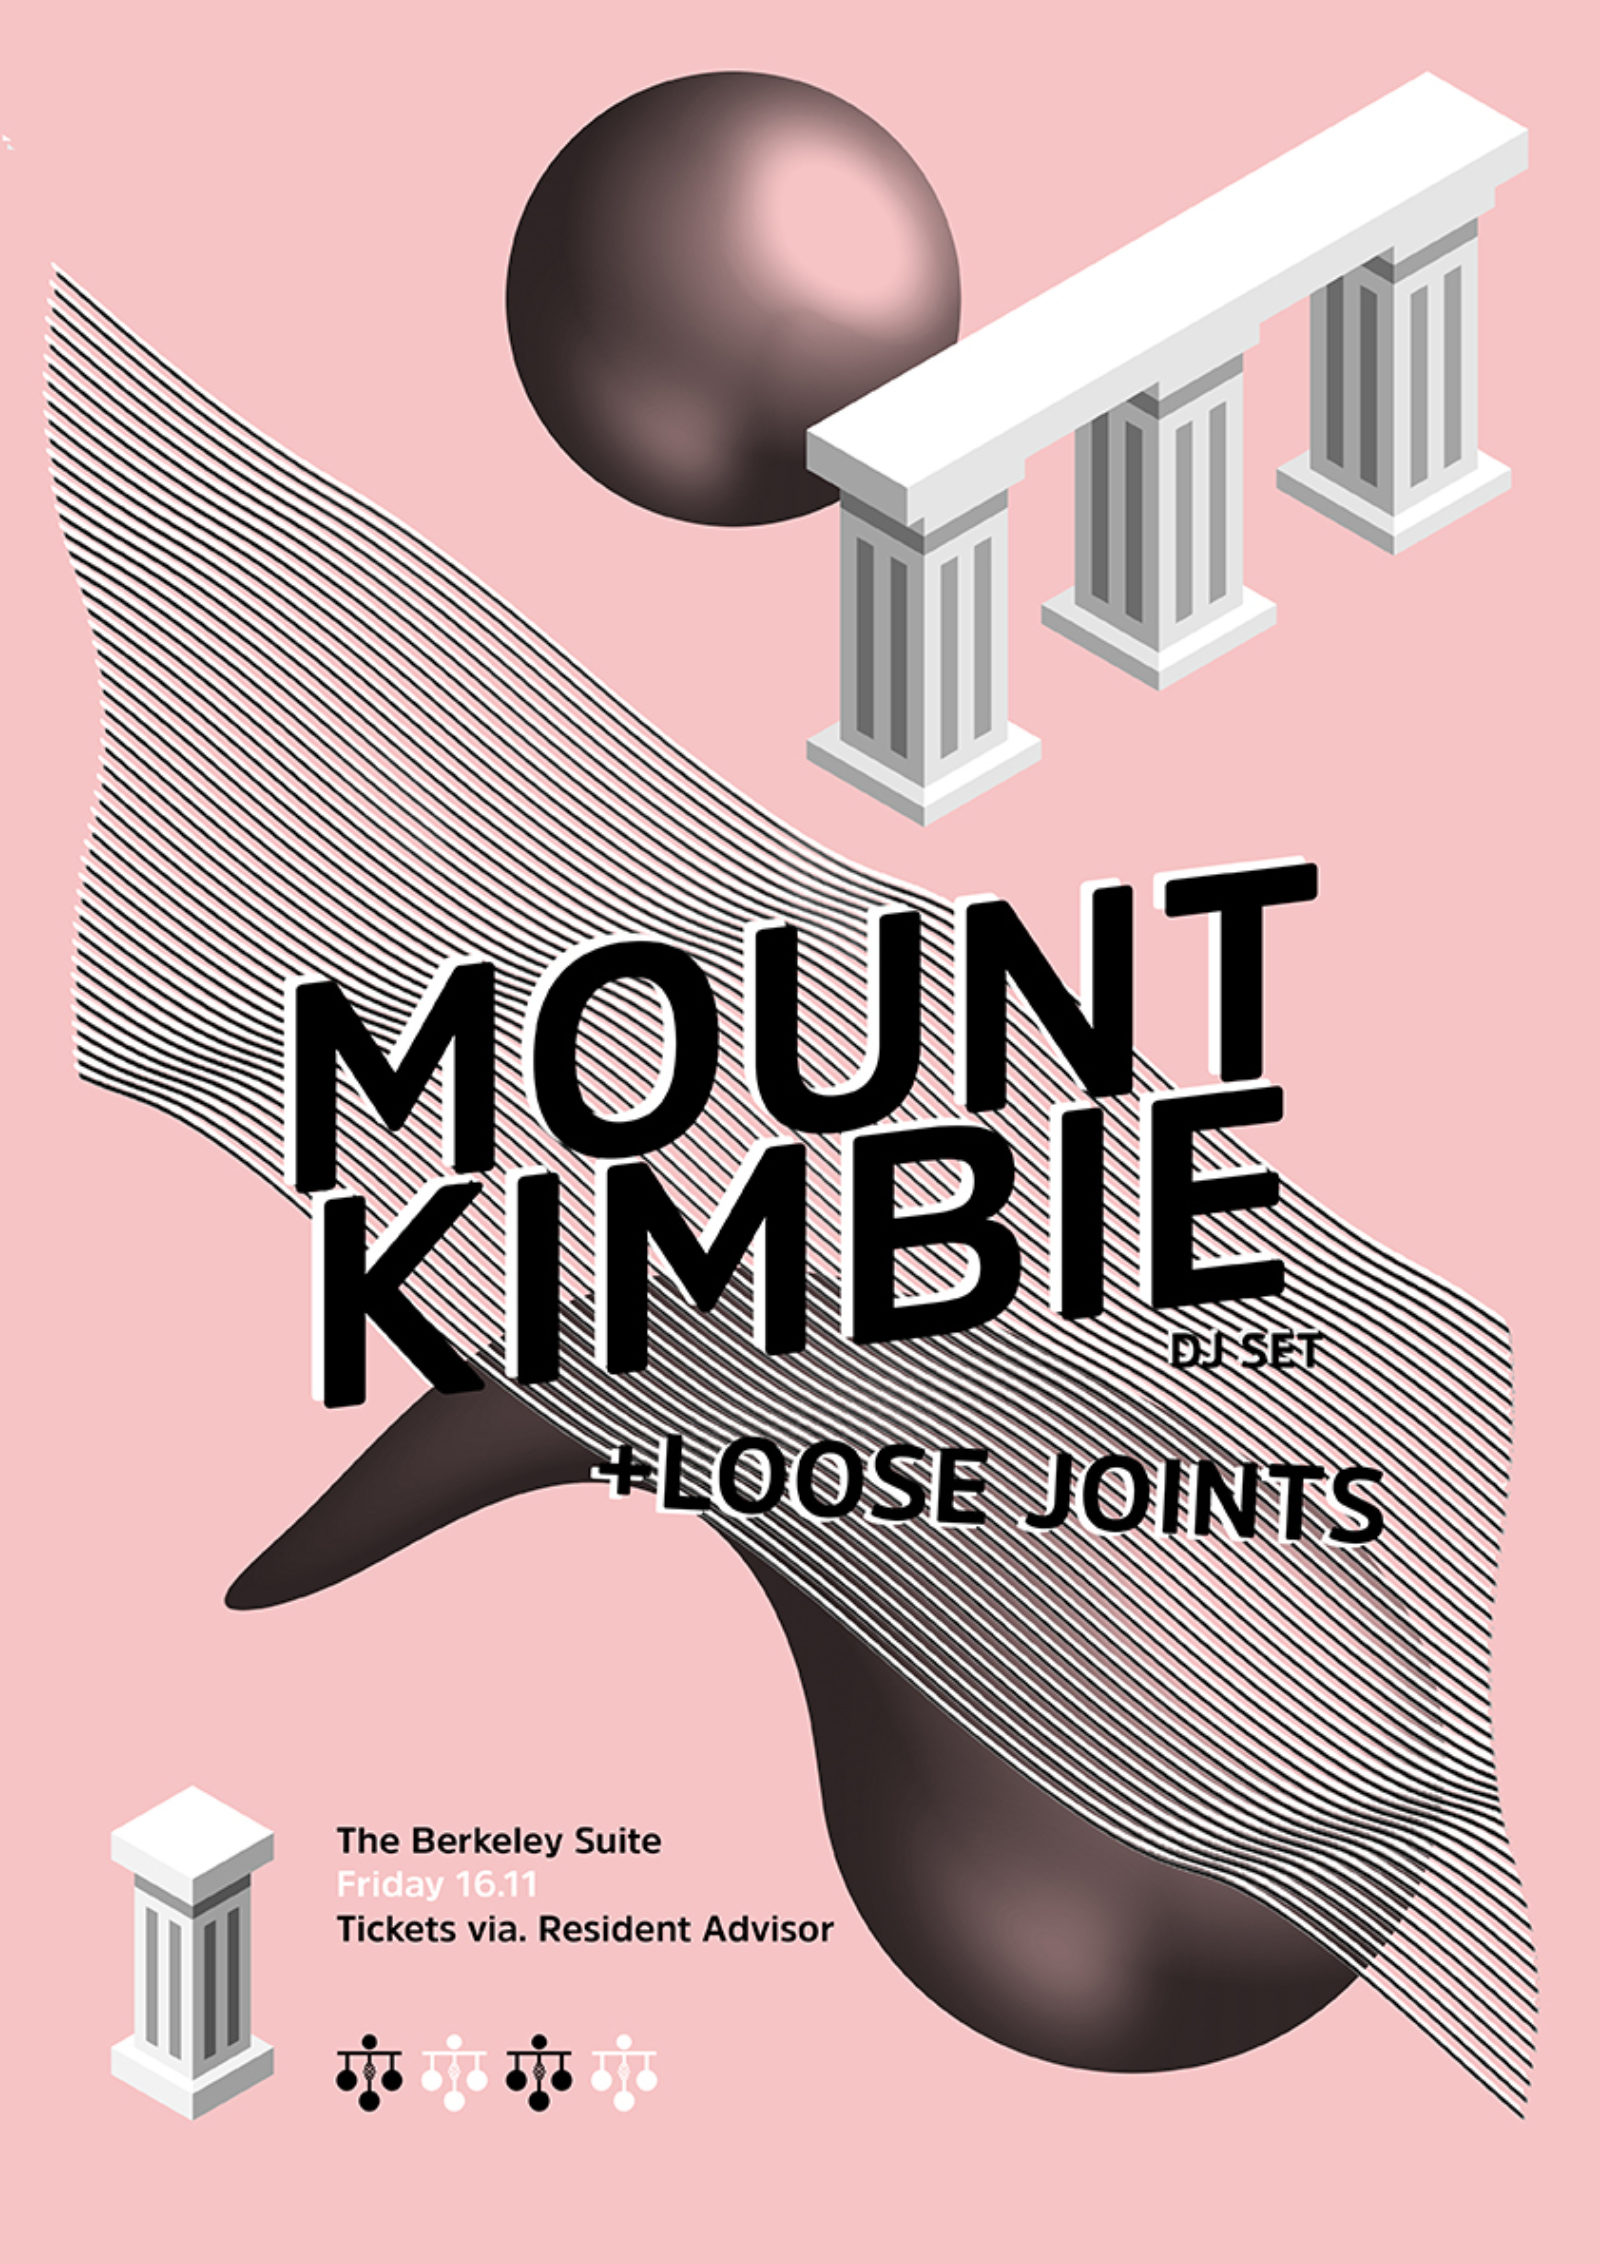 Mount Kimbie (DJ set)